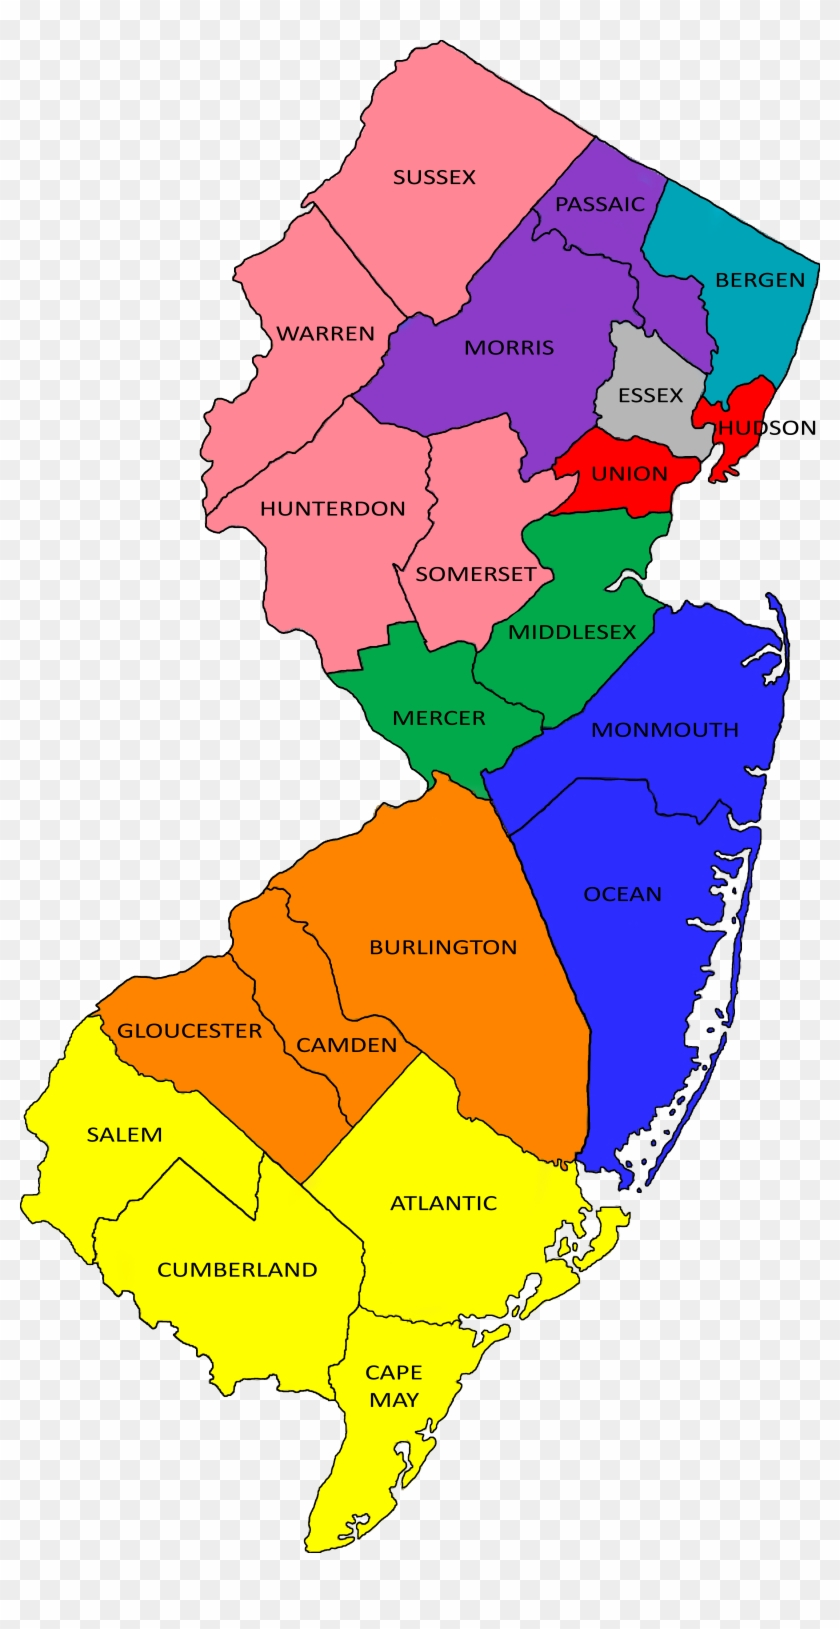 Mhc Ppc 2018 Map - New Jersey Map Pine Barrens, HD Png ...